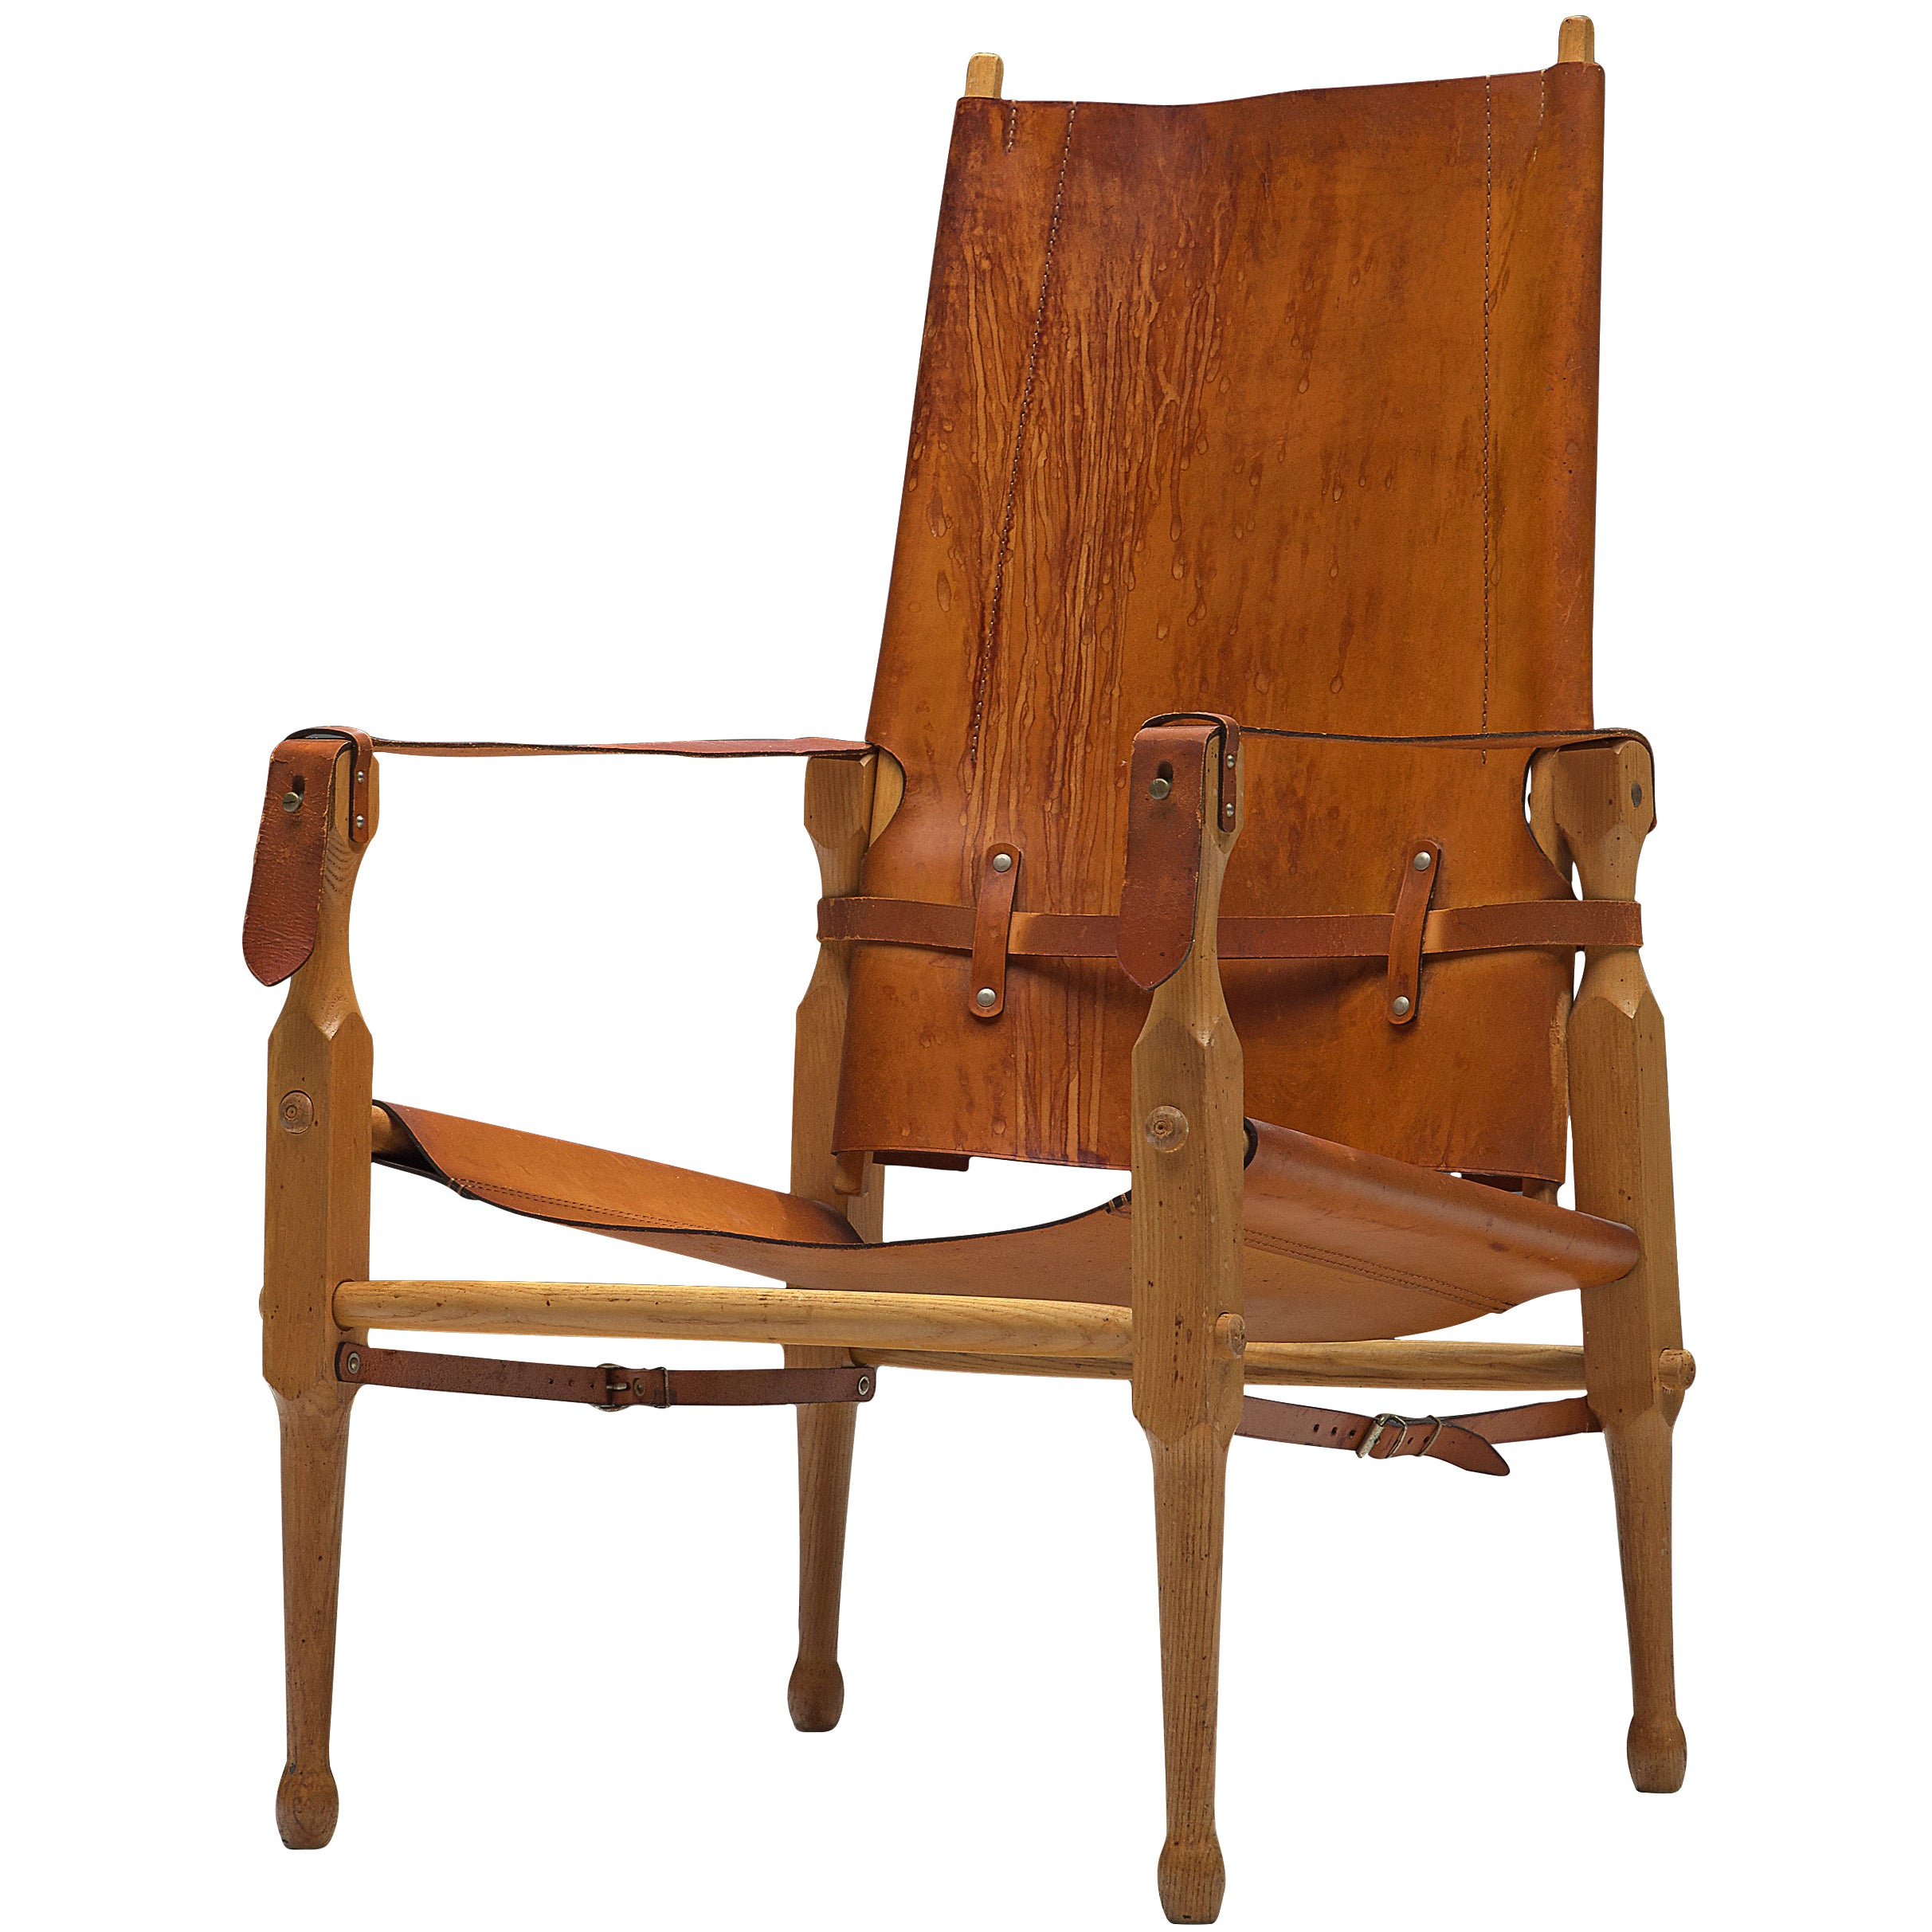 Danish 'Safari' Lounge Chair in Solid Beech and Cognac Leather